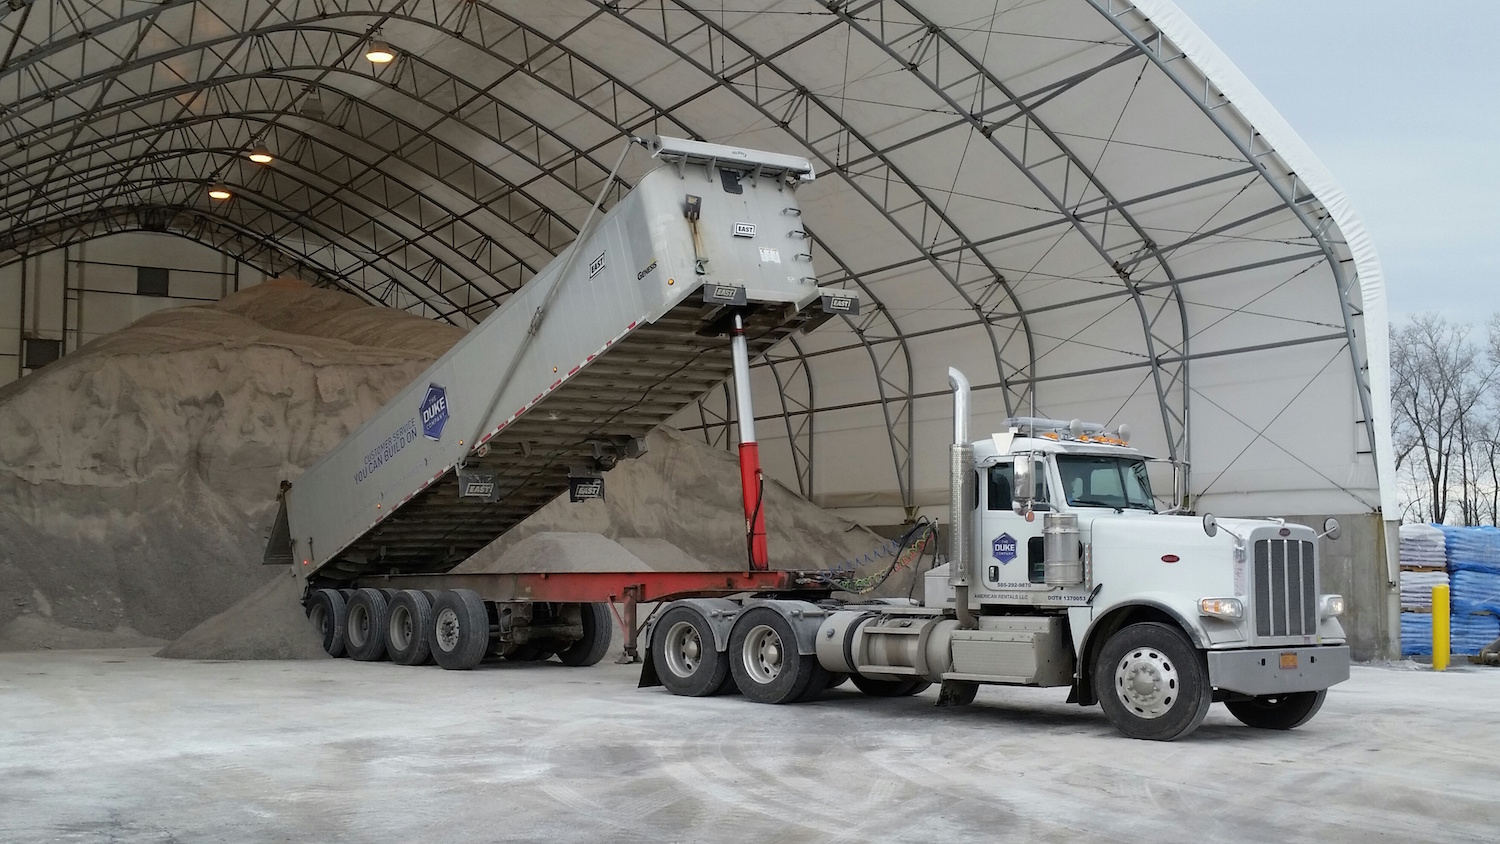 Duke-Company-18-Wheeler-Rock-Salt-Truck-loading-Road-Salt-in-Rochester-NY-2.jpg